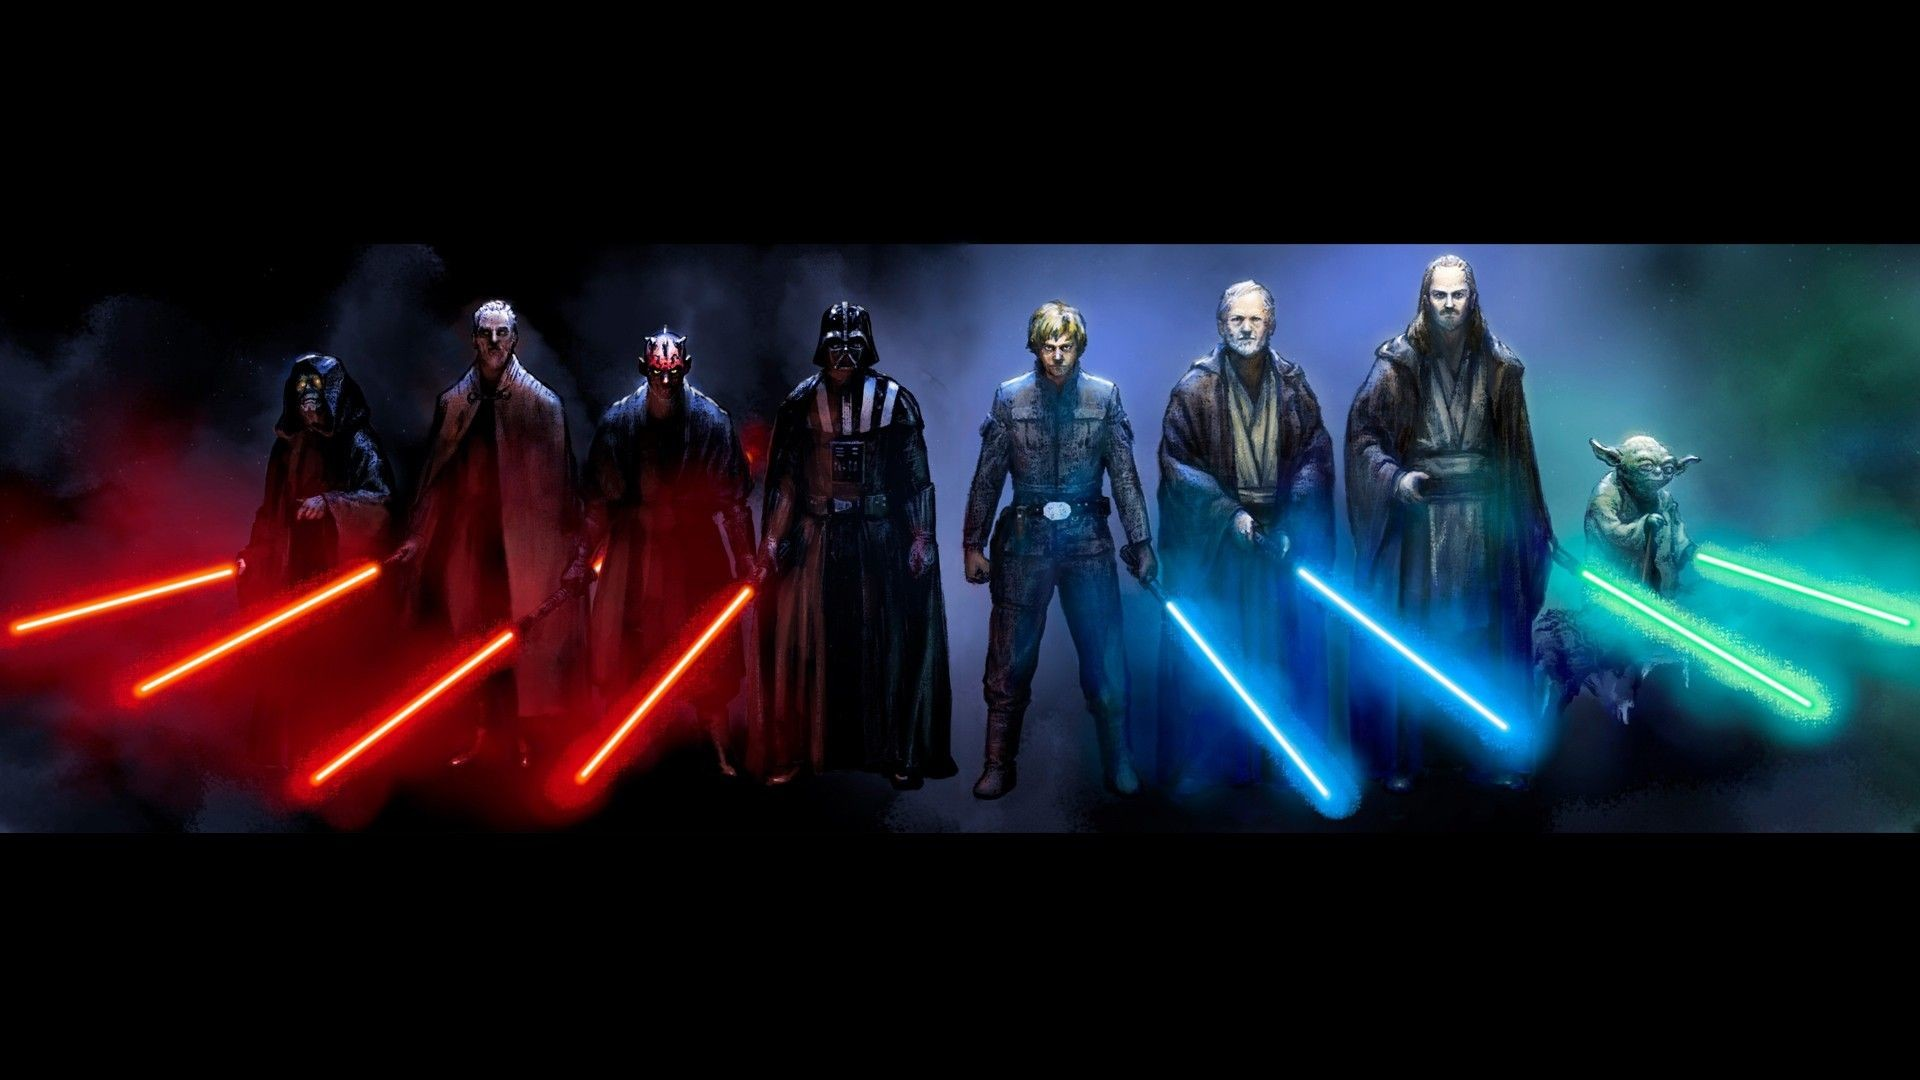 Star Wars Sith Wallpaper Hd 72 Images